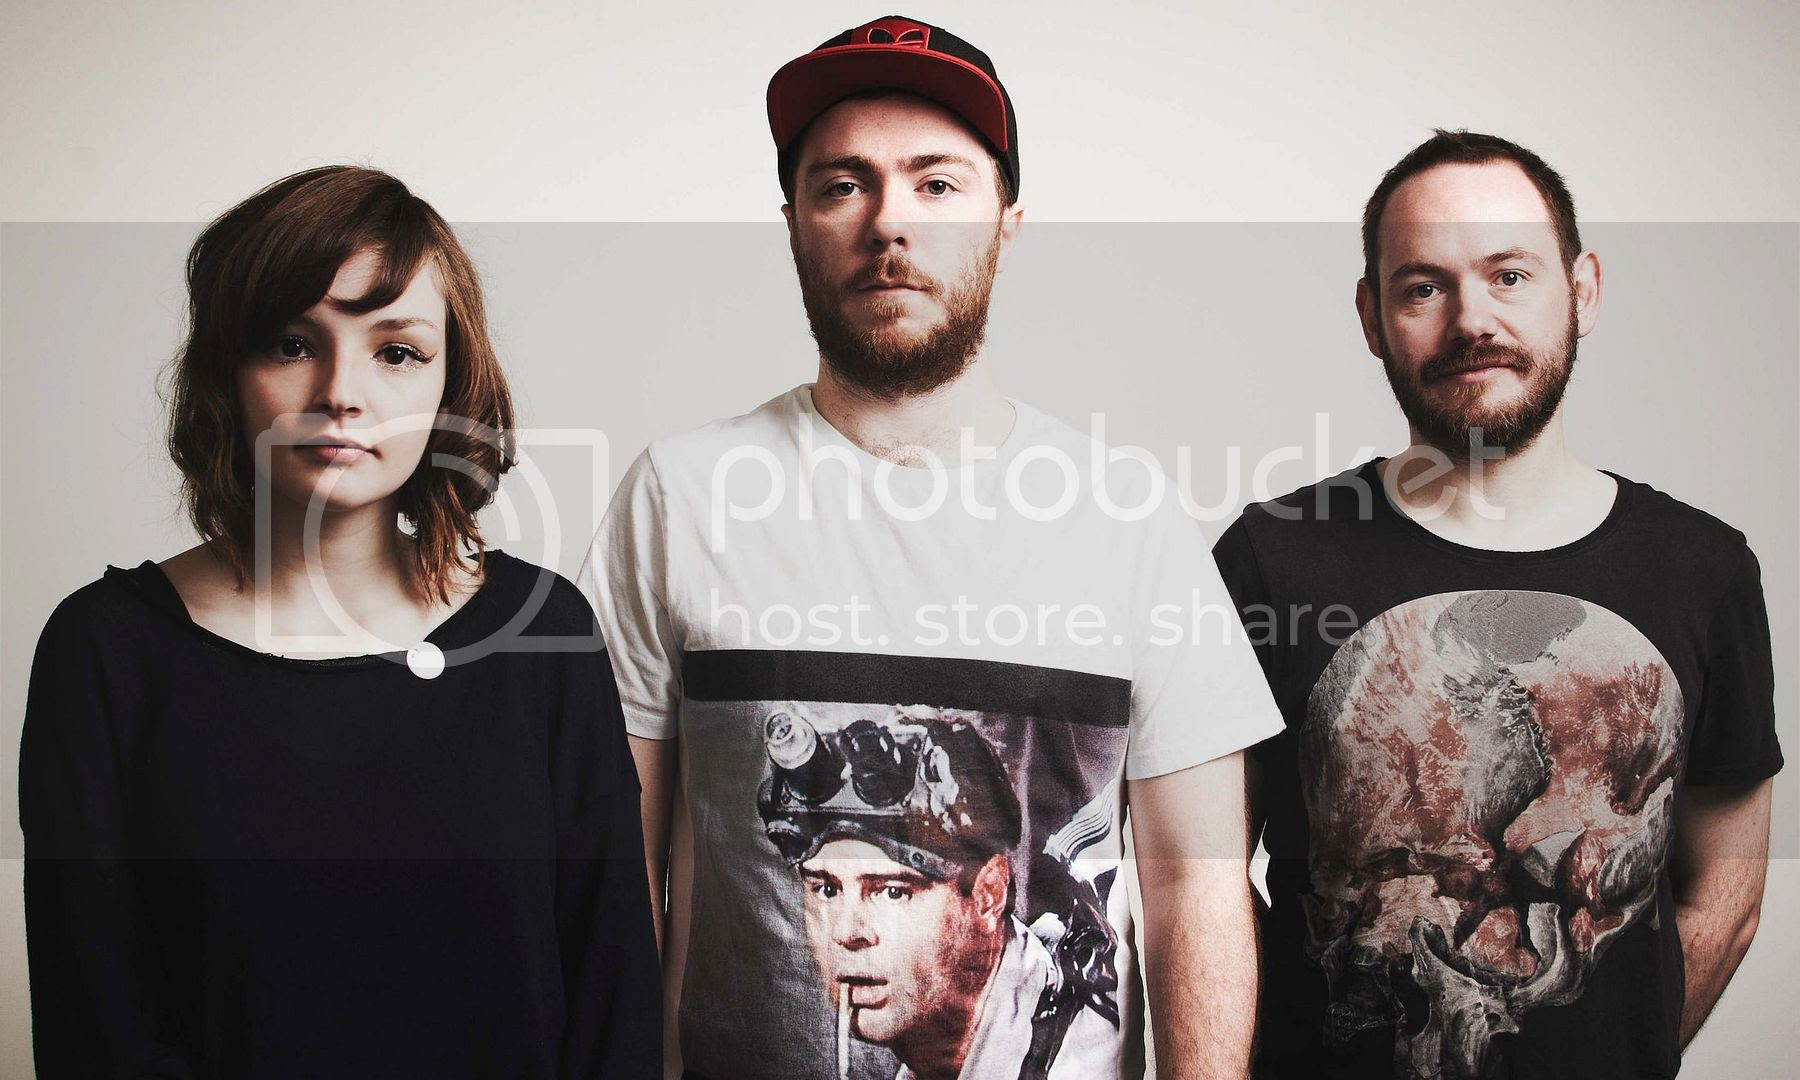 photo Chvrches2013_zps05ffc55e.jpg